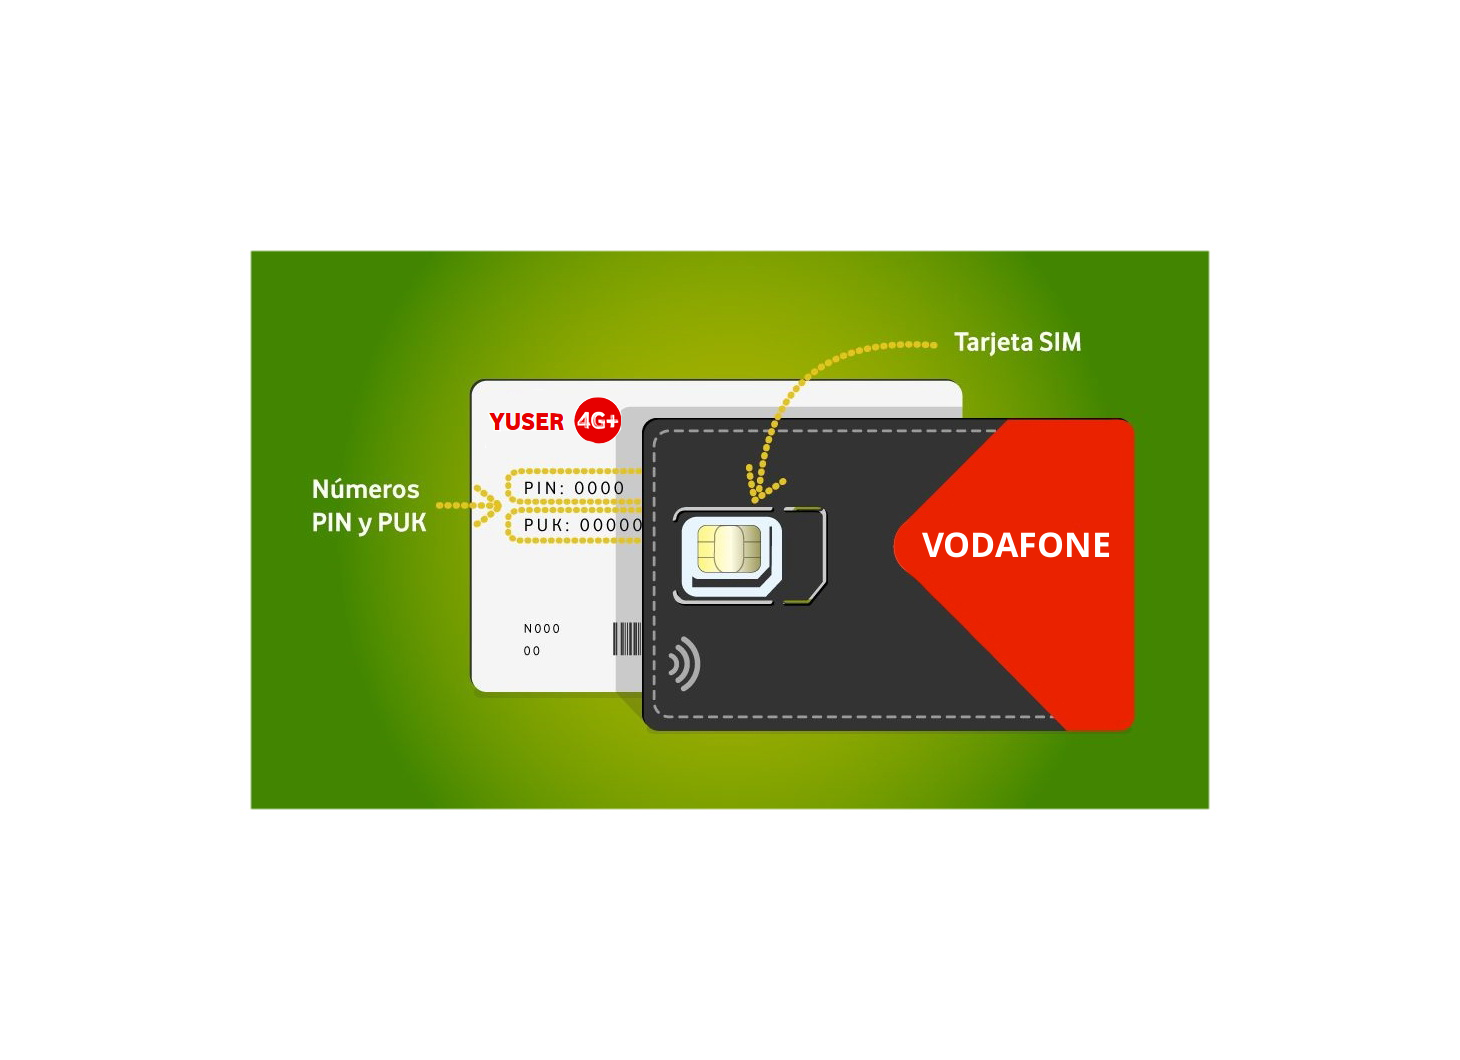 Vodafone Payg Top Up >> Vodafone Mega Yuser 15gb For 4g Internet And 60 Min For Calls